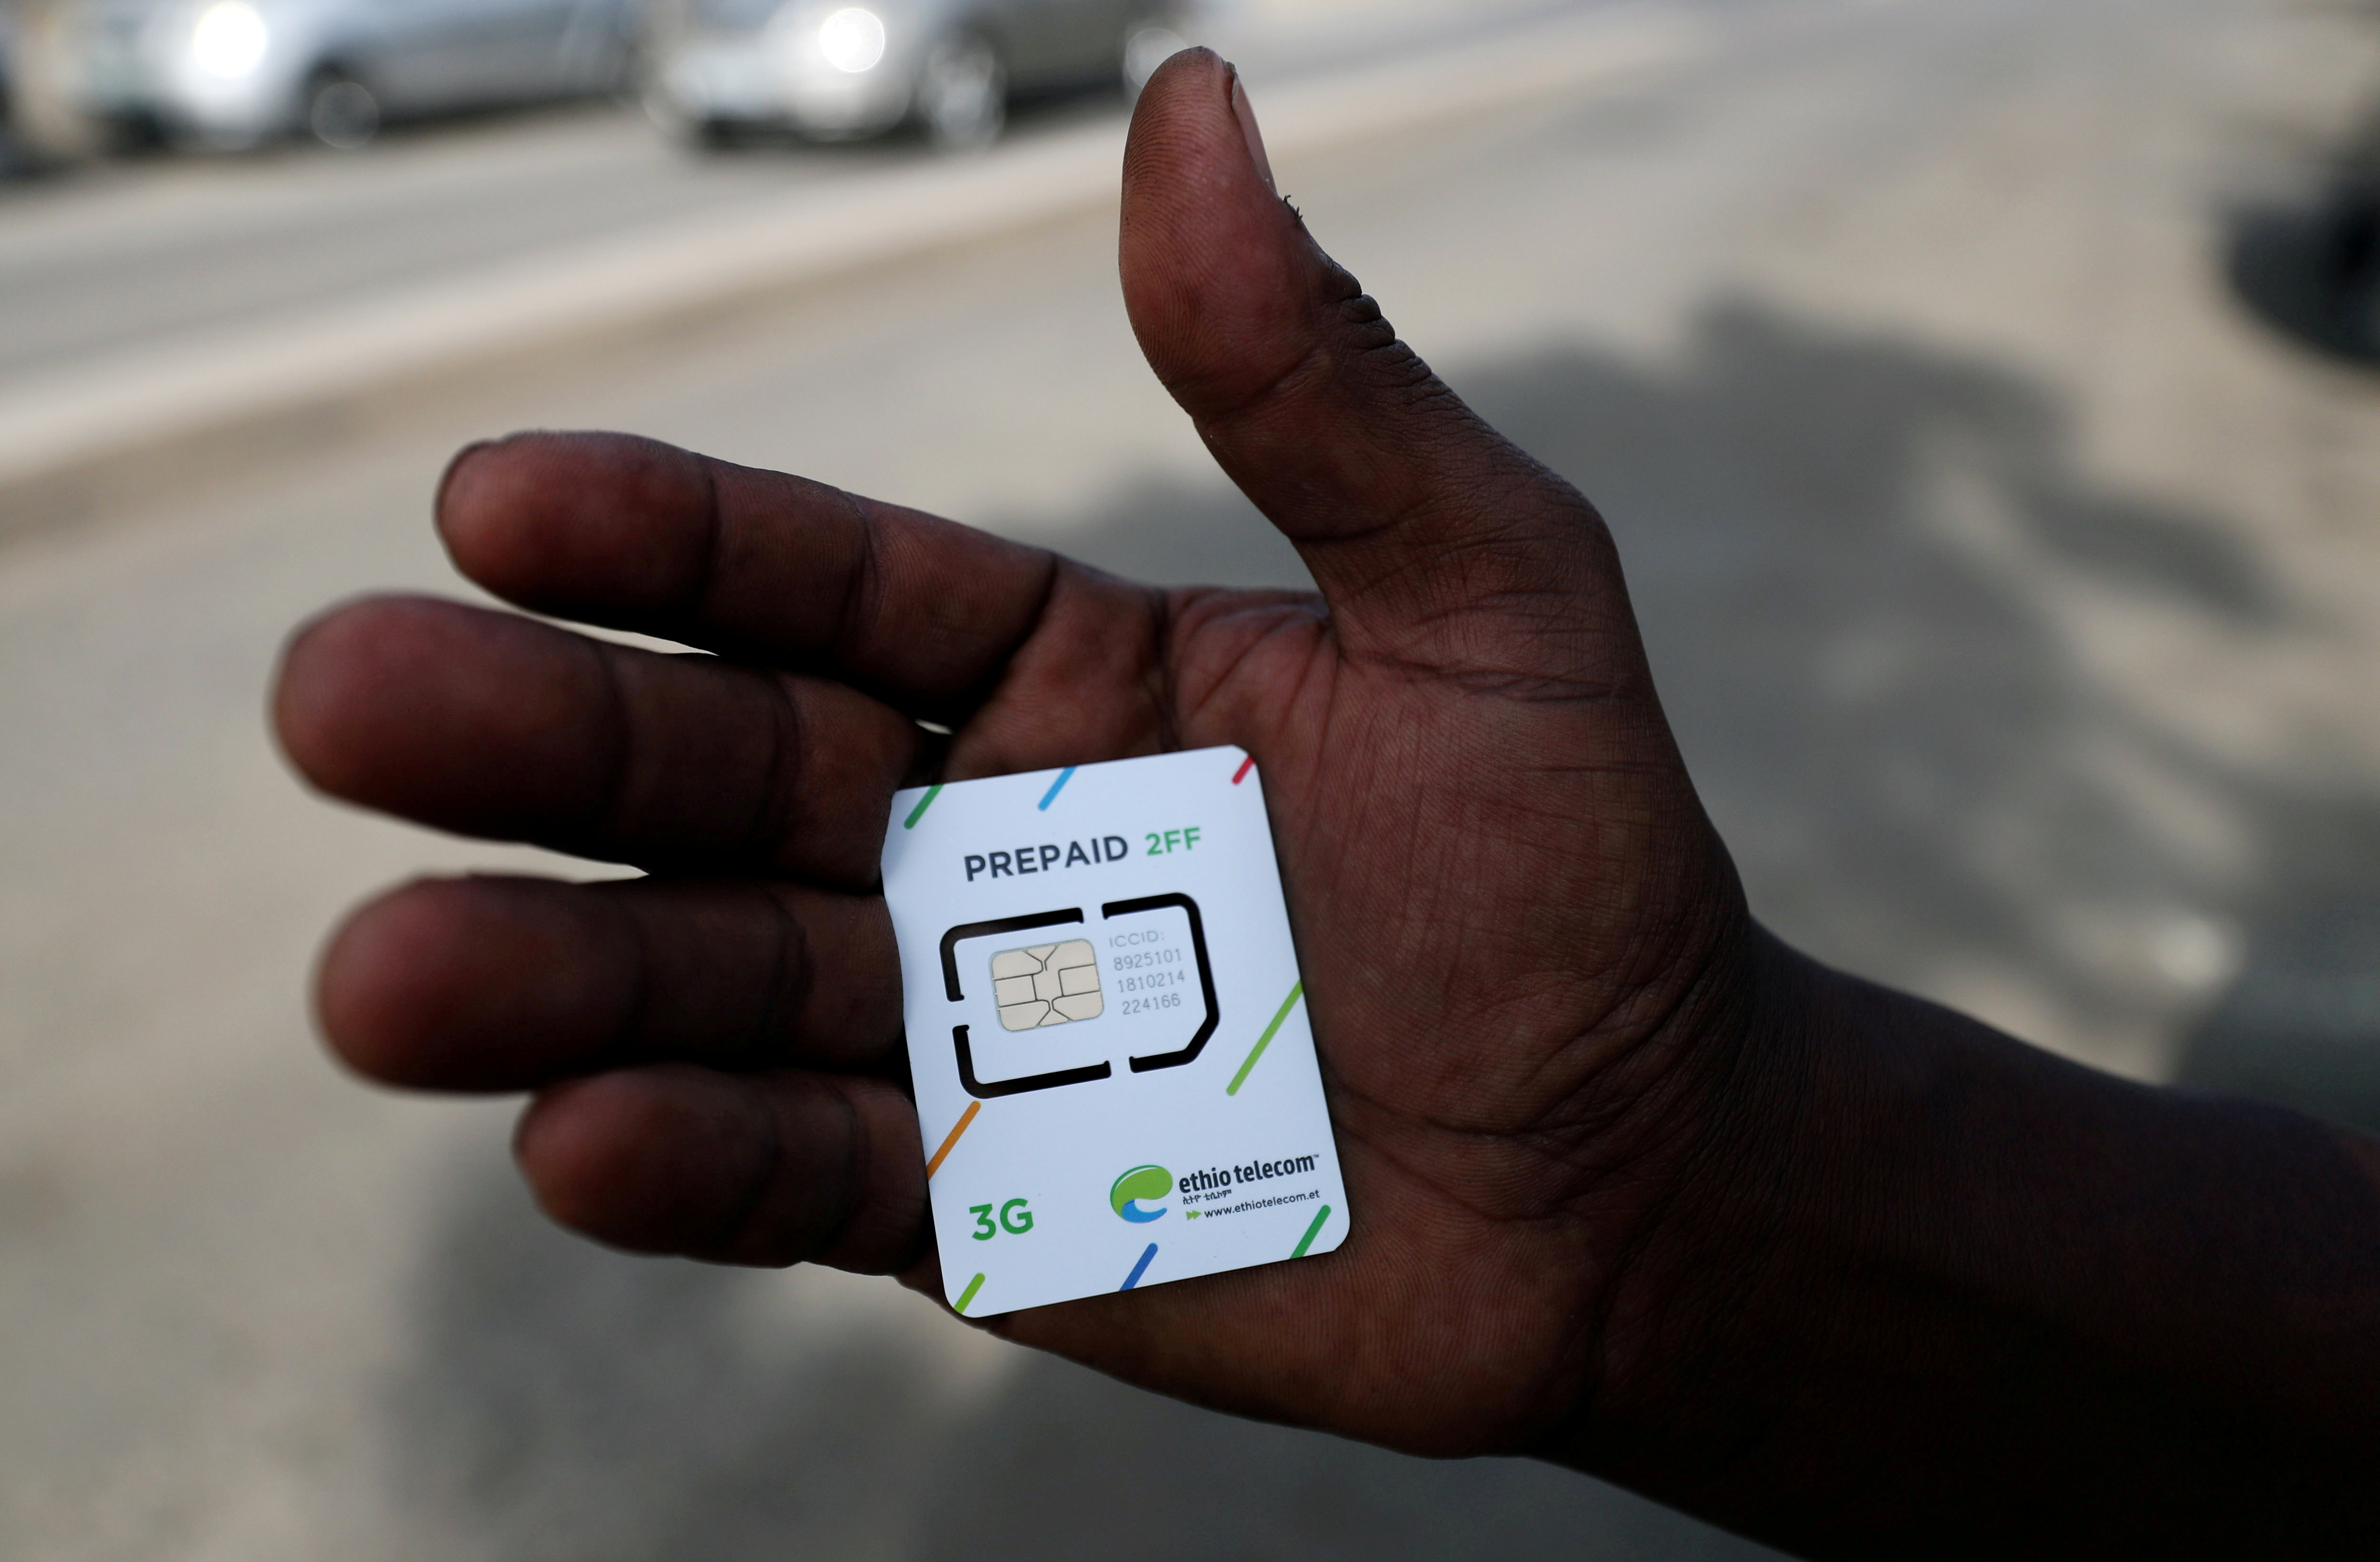 FILE PHOTO: A customer holds a 3G prepaid sim card after buying the service from an Ethio-Telecom shop in Addis Ababa, Ethiopia, November 12, 2019. REUTERS/Tiksa Negeri/File Photo